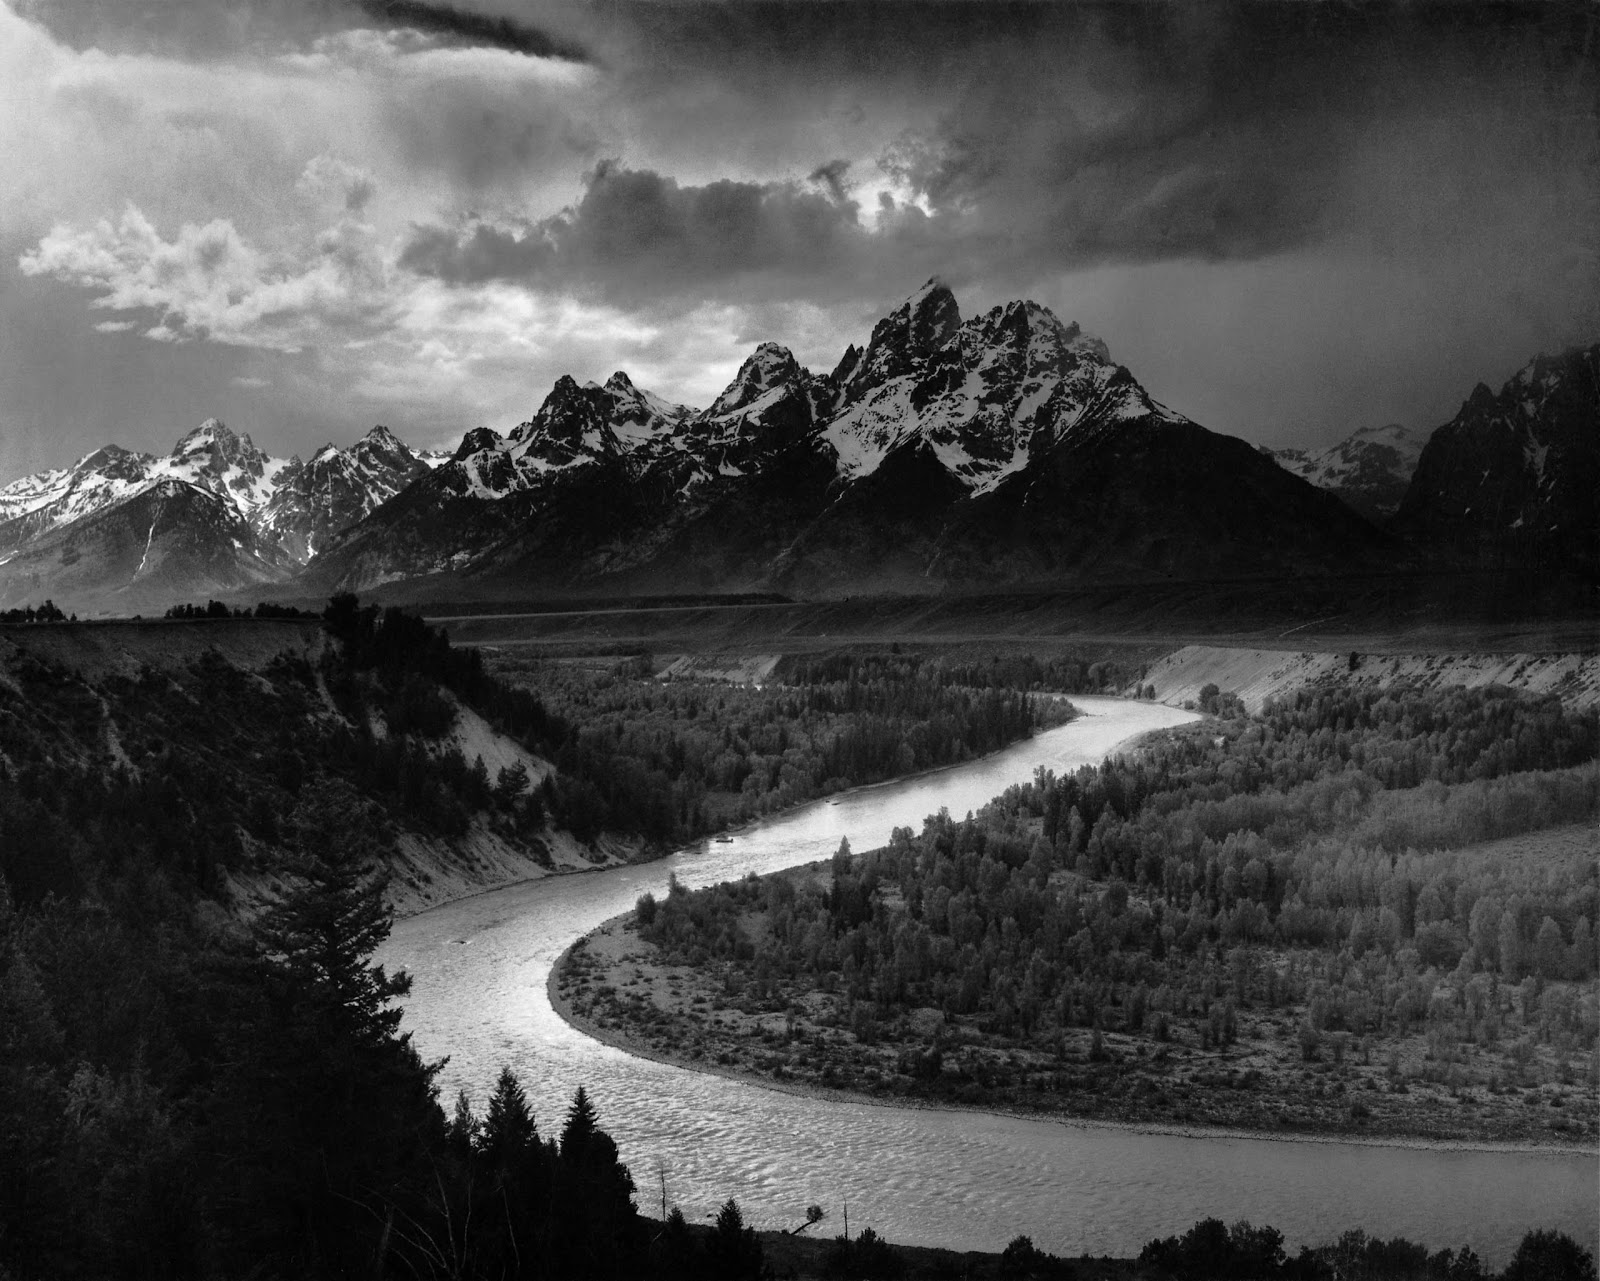 The Reel Foto Ansel Adams A Different Kind Of Landscape